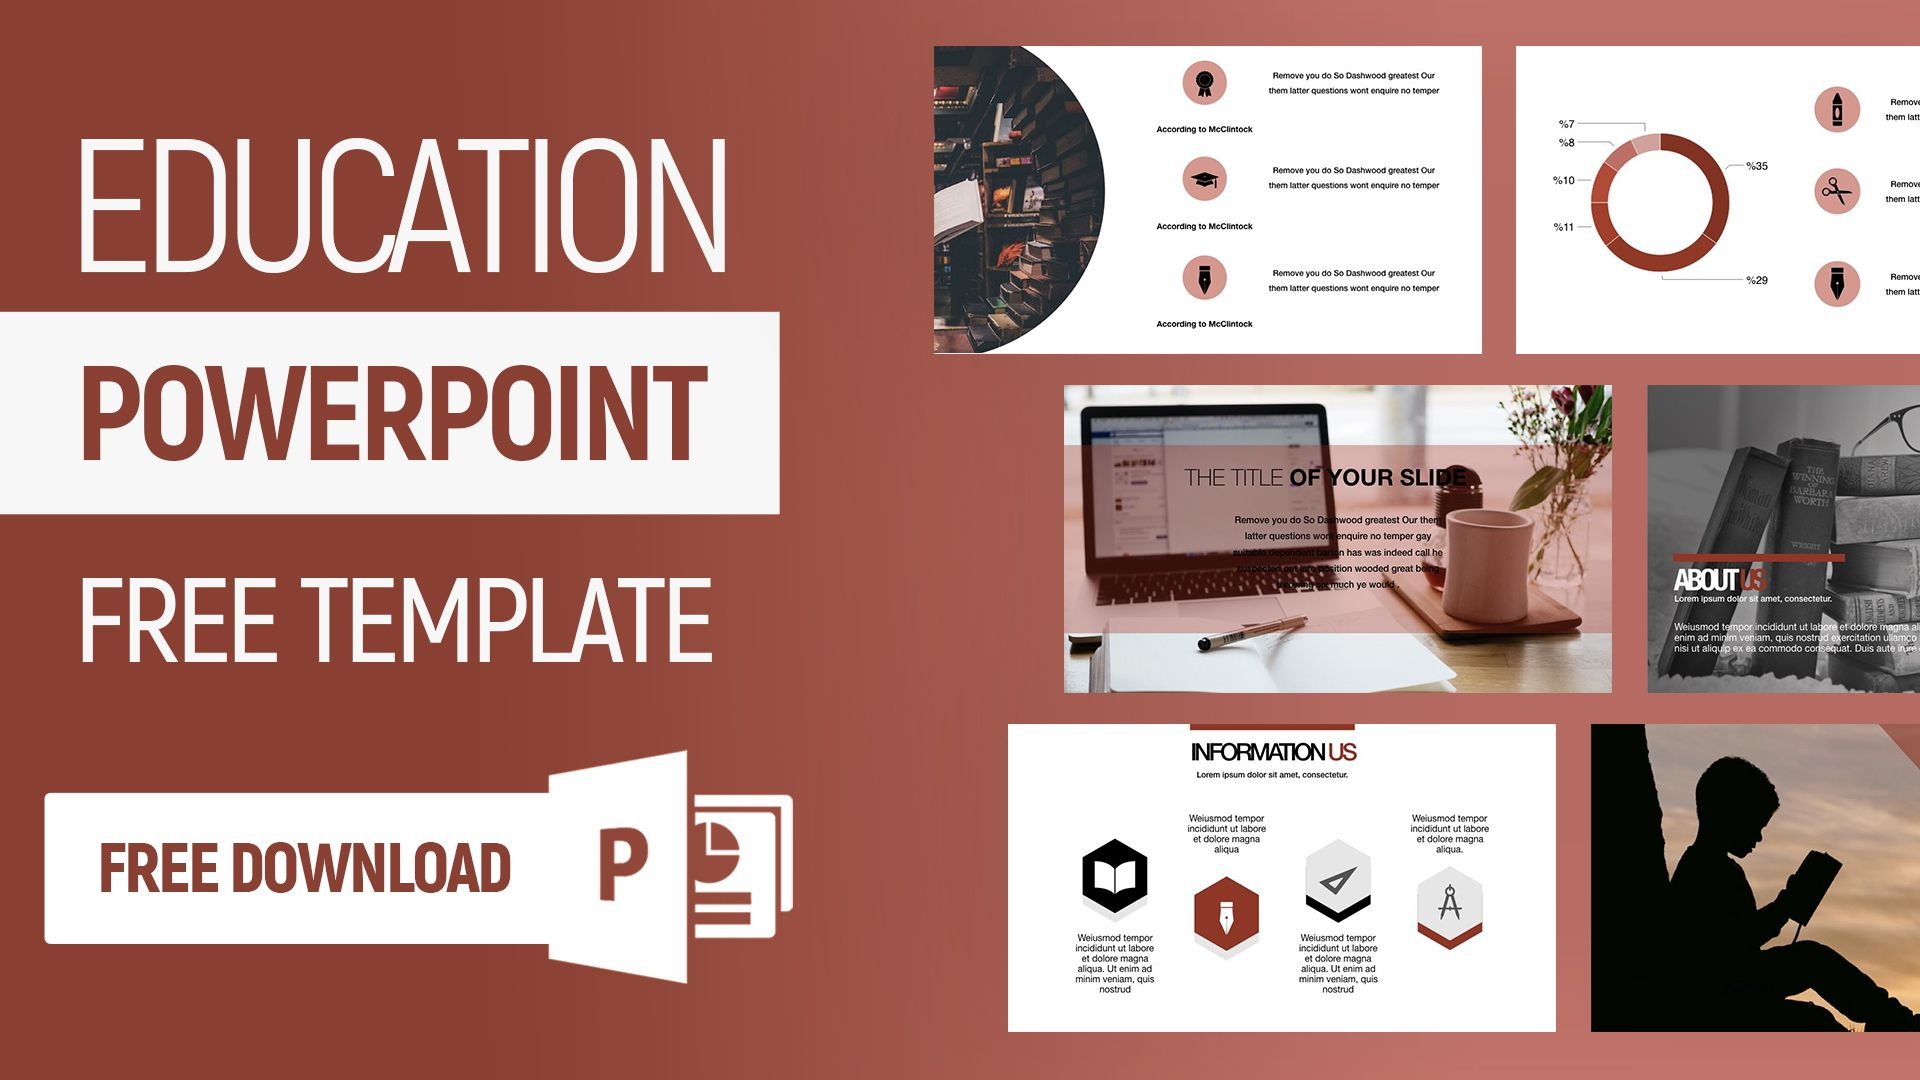 006 Simple Free Education Powerpoint Template Highest Quality  Templates Physical Download Downloadable For Teacher DesignFull